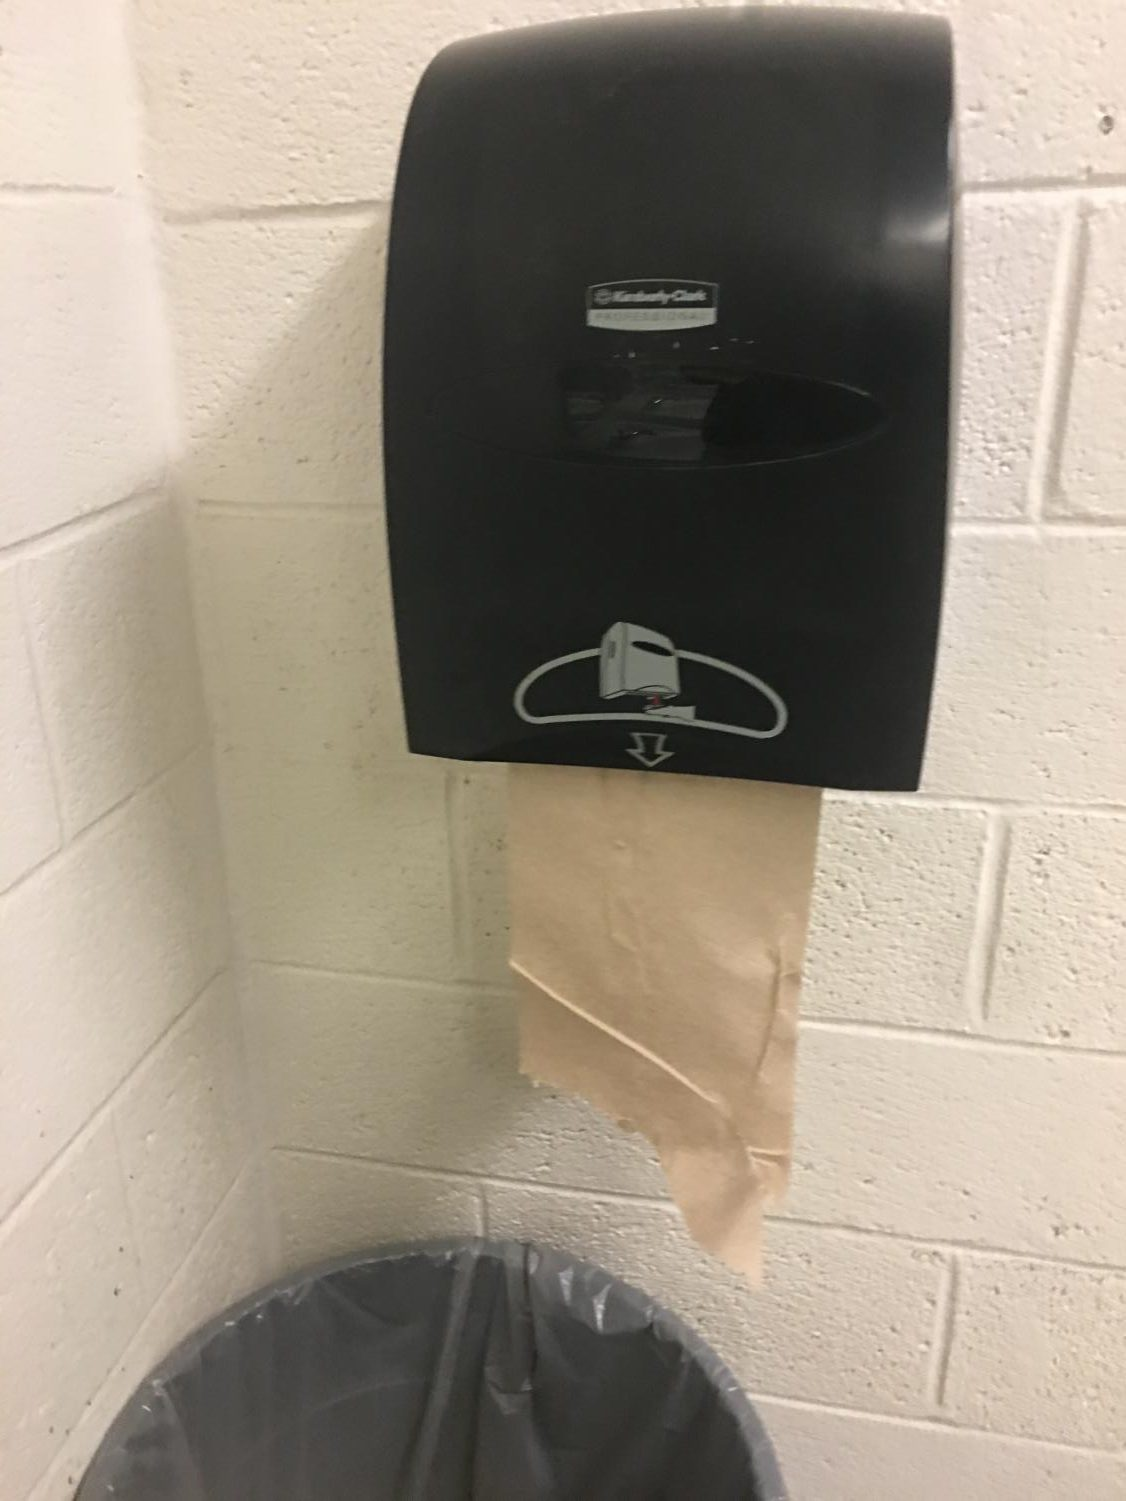 Motion-sensor paper towel dispensers were recently installed in bathrooms to help reduce paper waste.